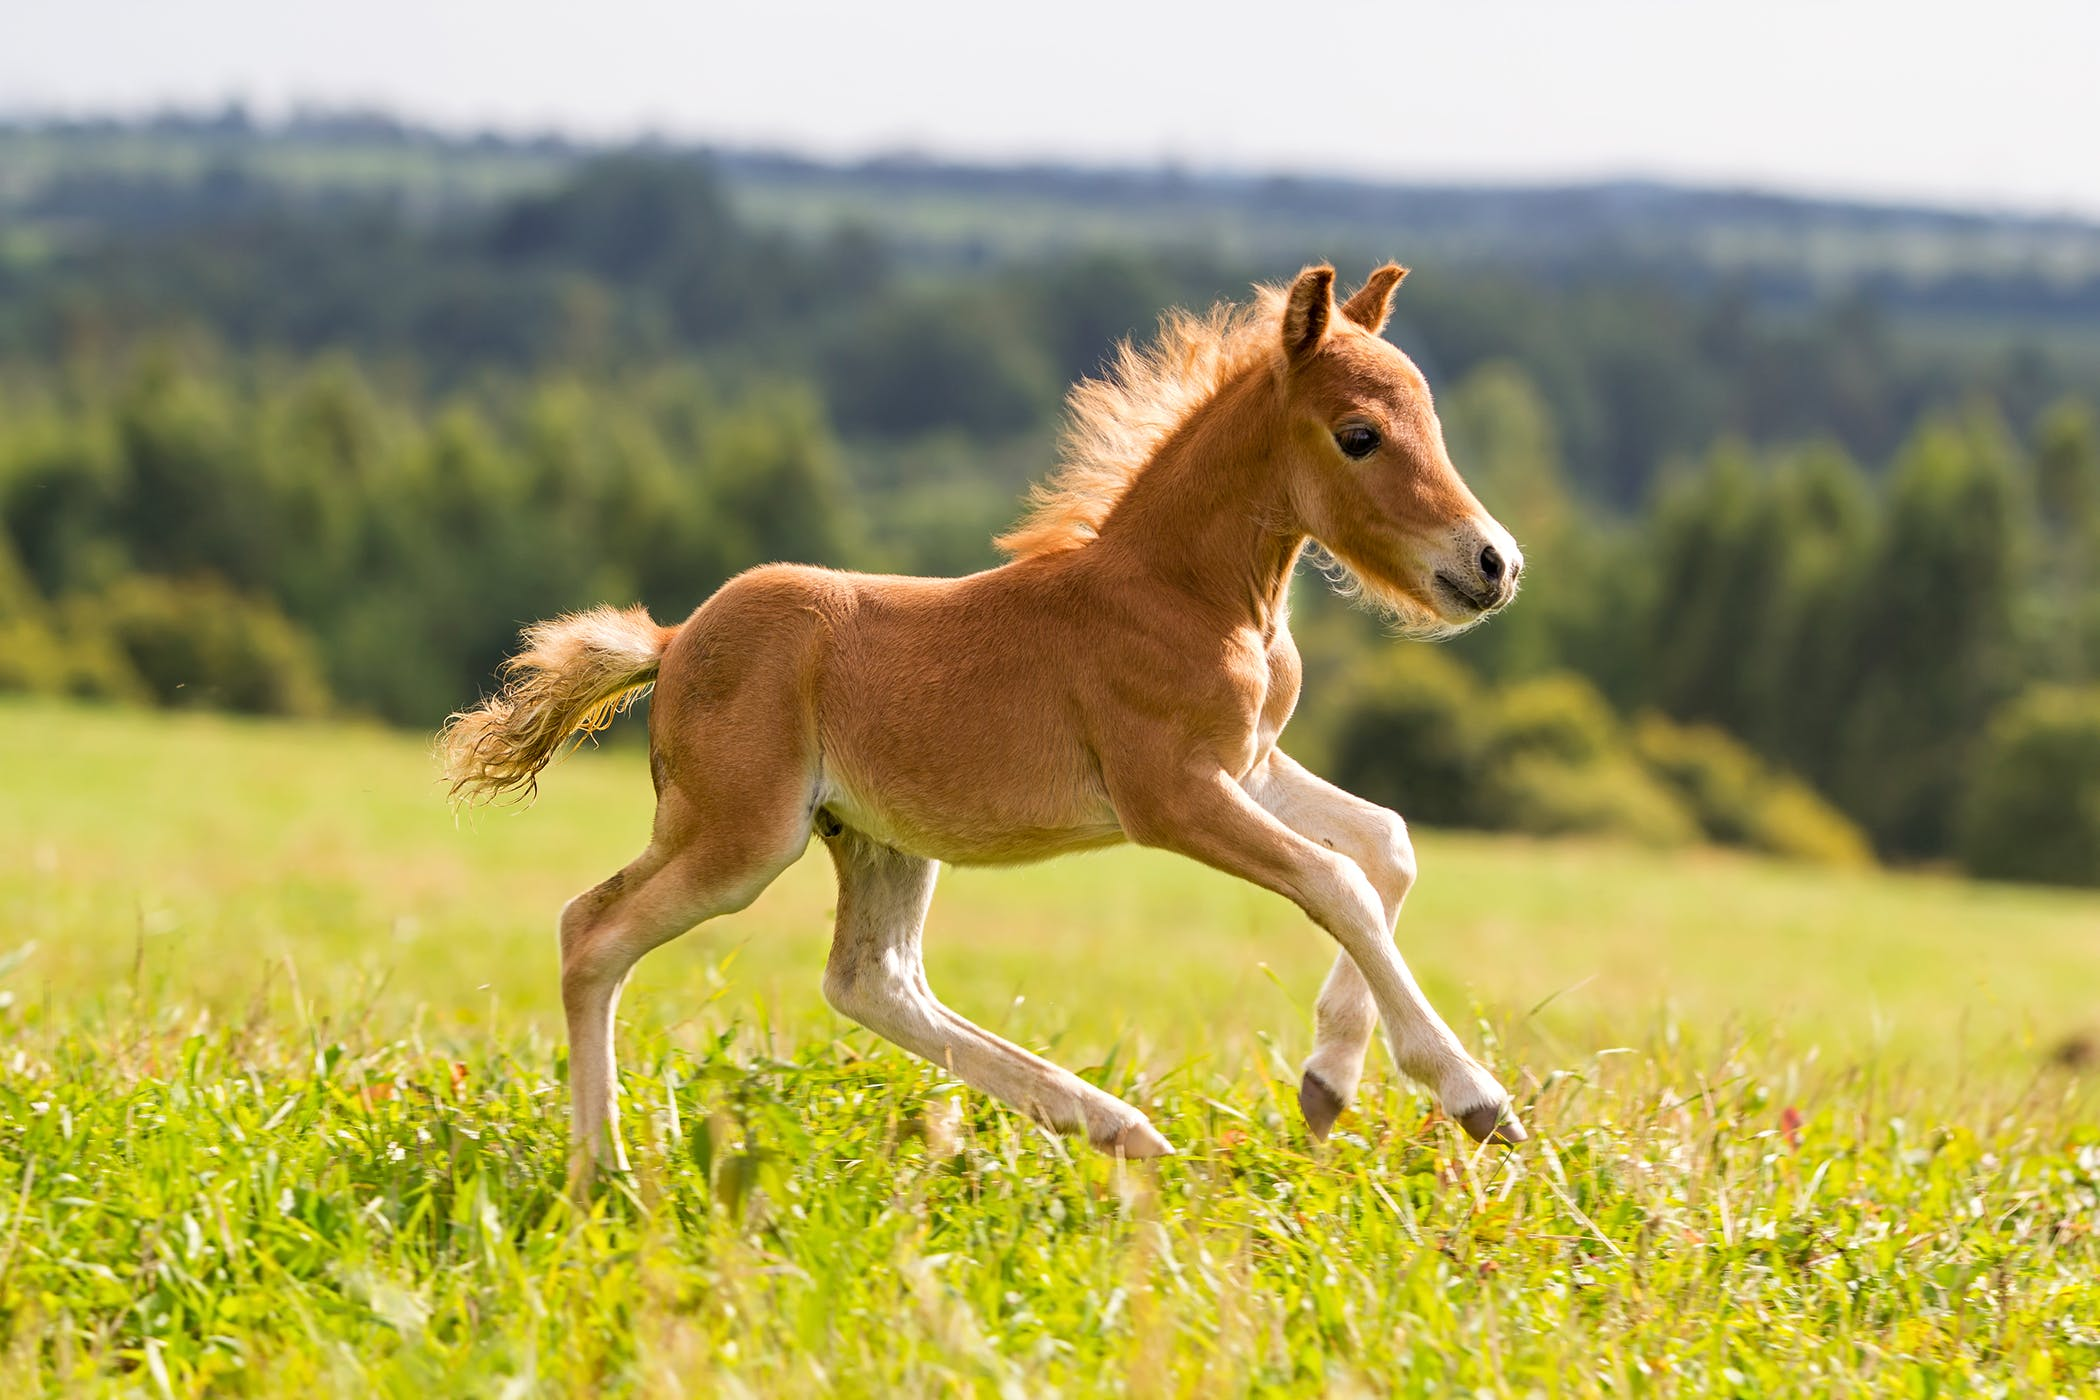 orphan foal in horses symptoms causes diagnosis treatment